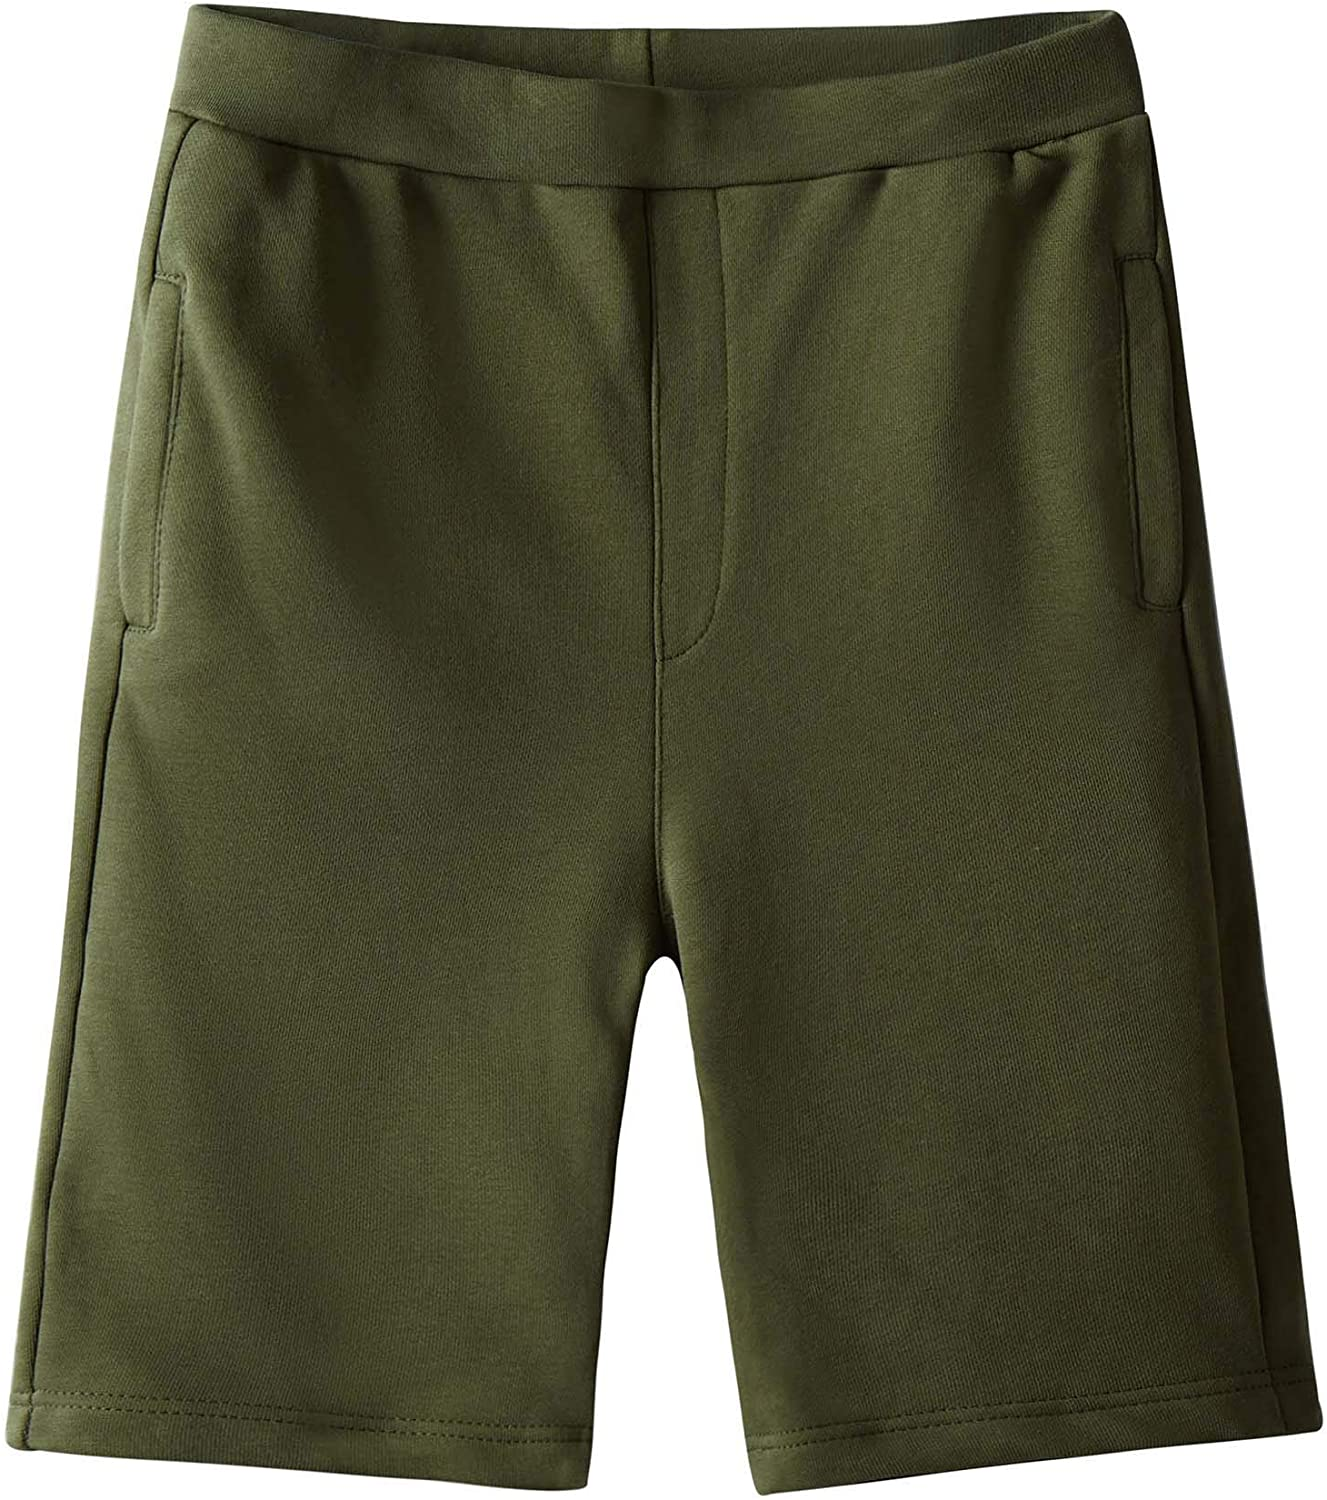 Spring/&Gege Boys Casual Soft Cotton Active Pocket Shorts